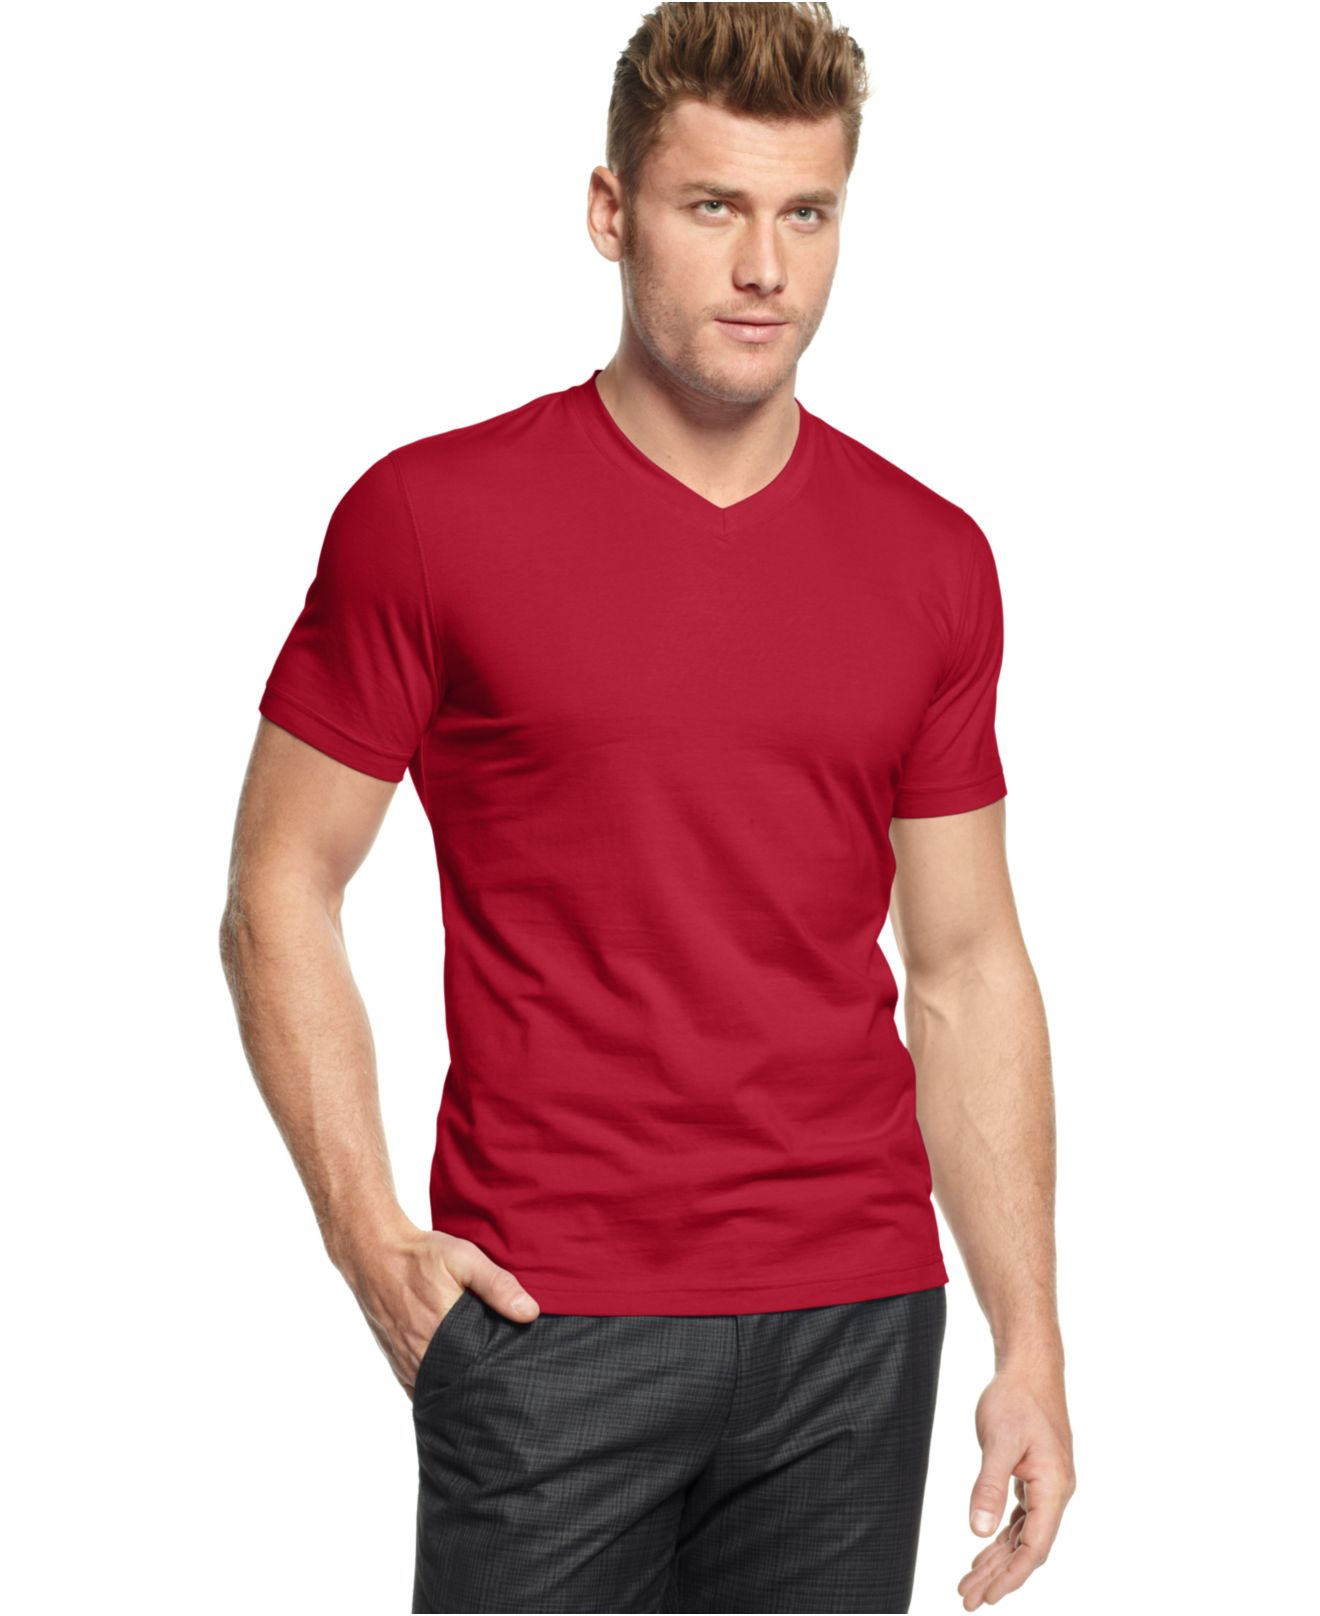 alfani slim fitted v neck t shirt in red for men fierce